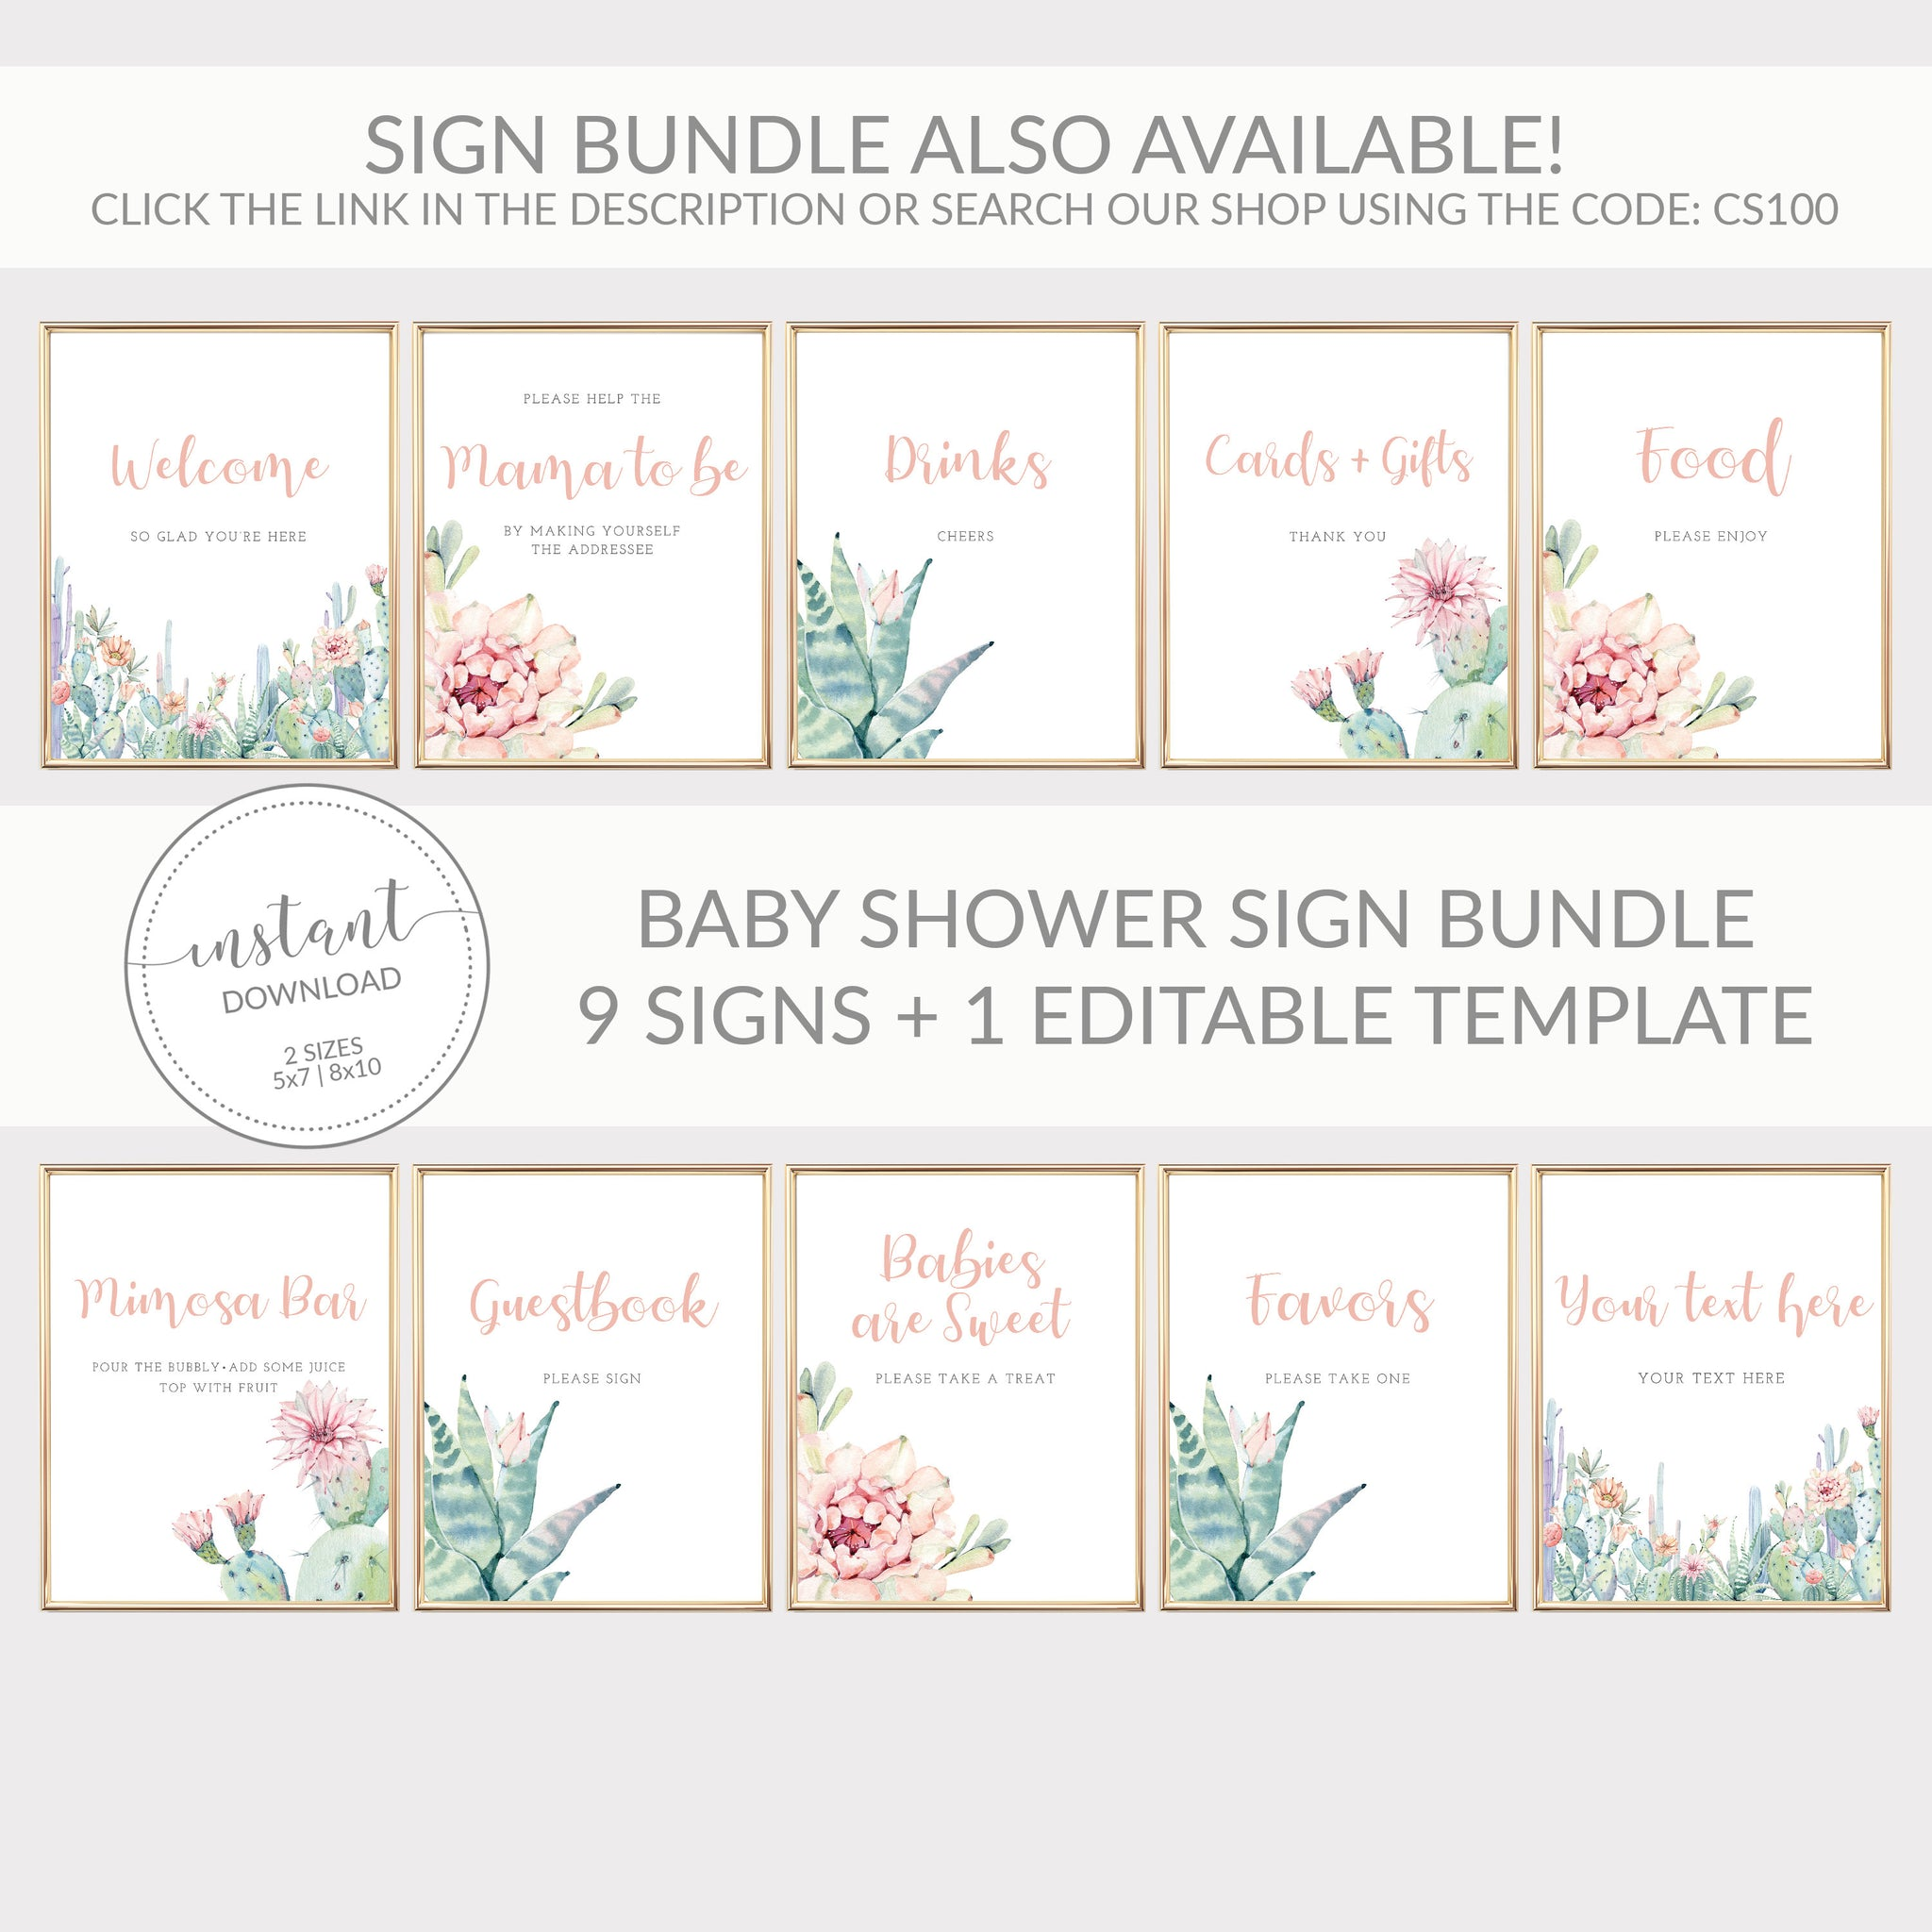 Succulent Baby Shower Dessert Table Sign Printable, Babies Are Sweet Treat Sign Printable, Cactus Baby Shower, DIGITAL DOWNLOAD - CS100